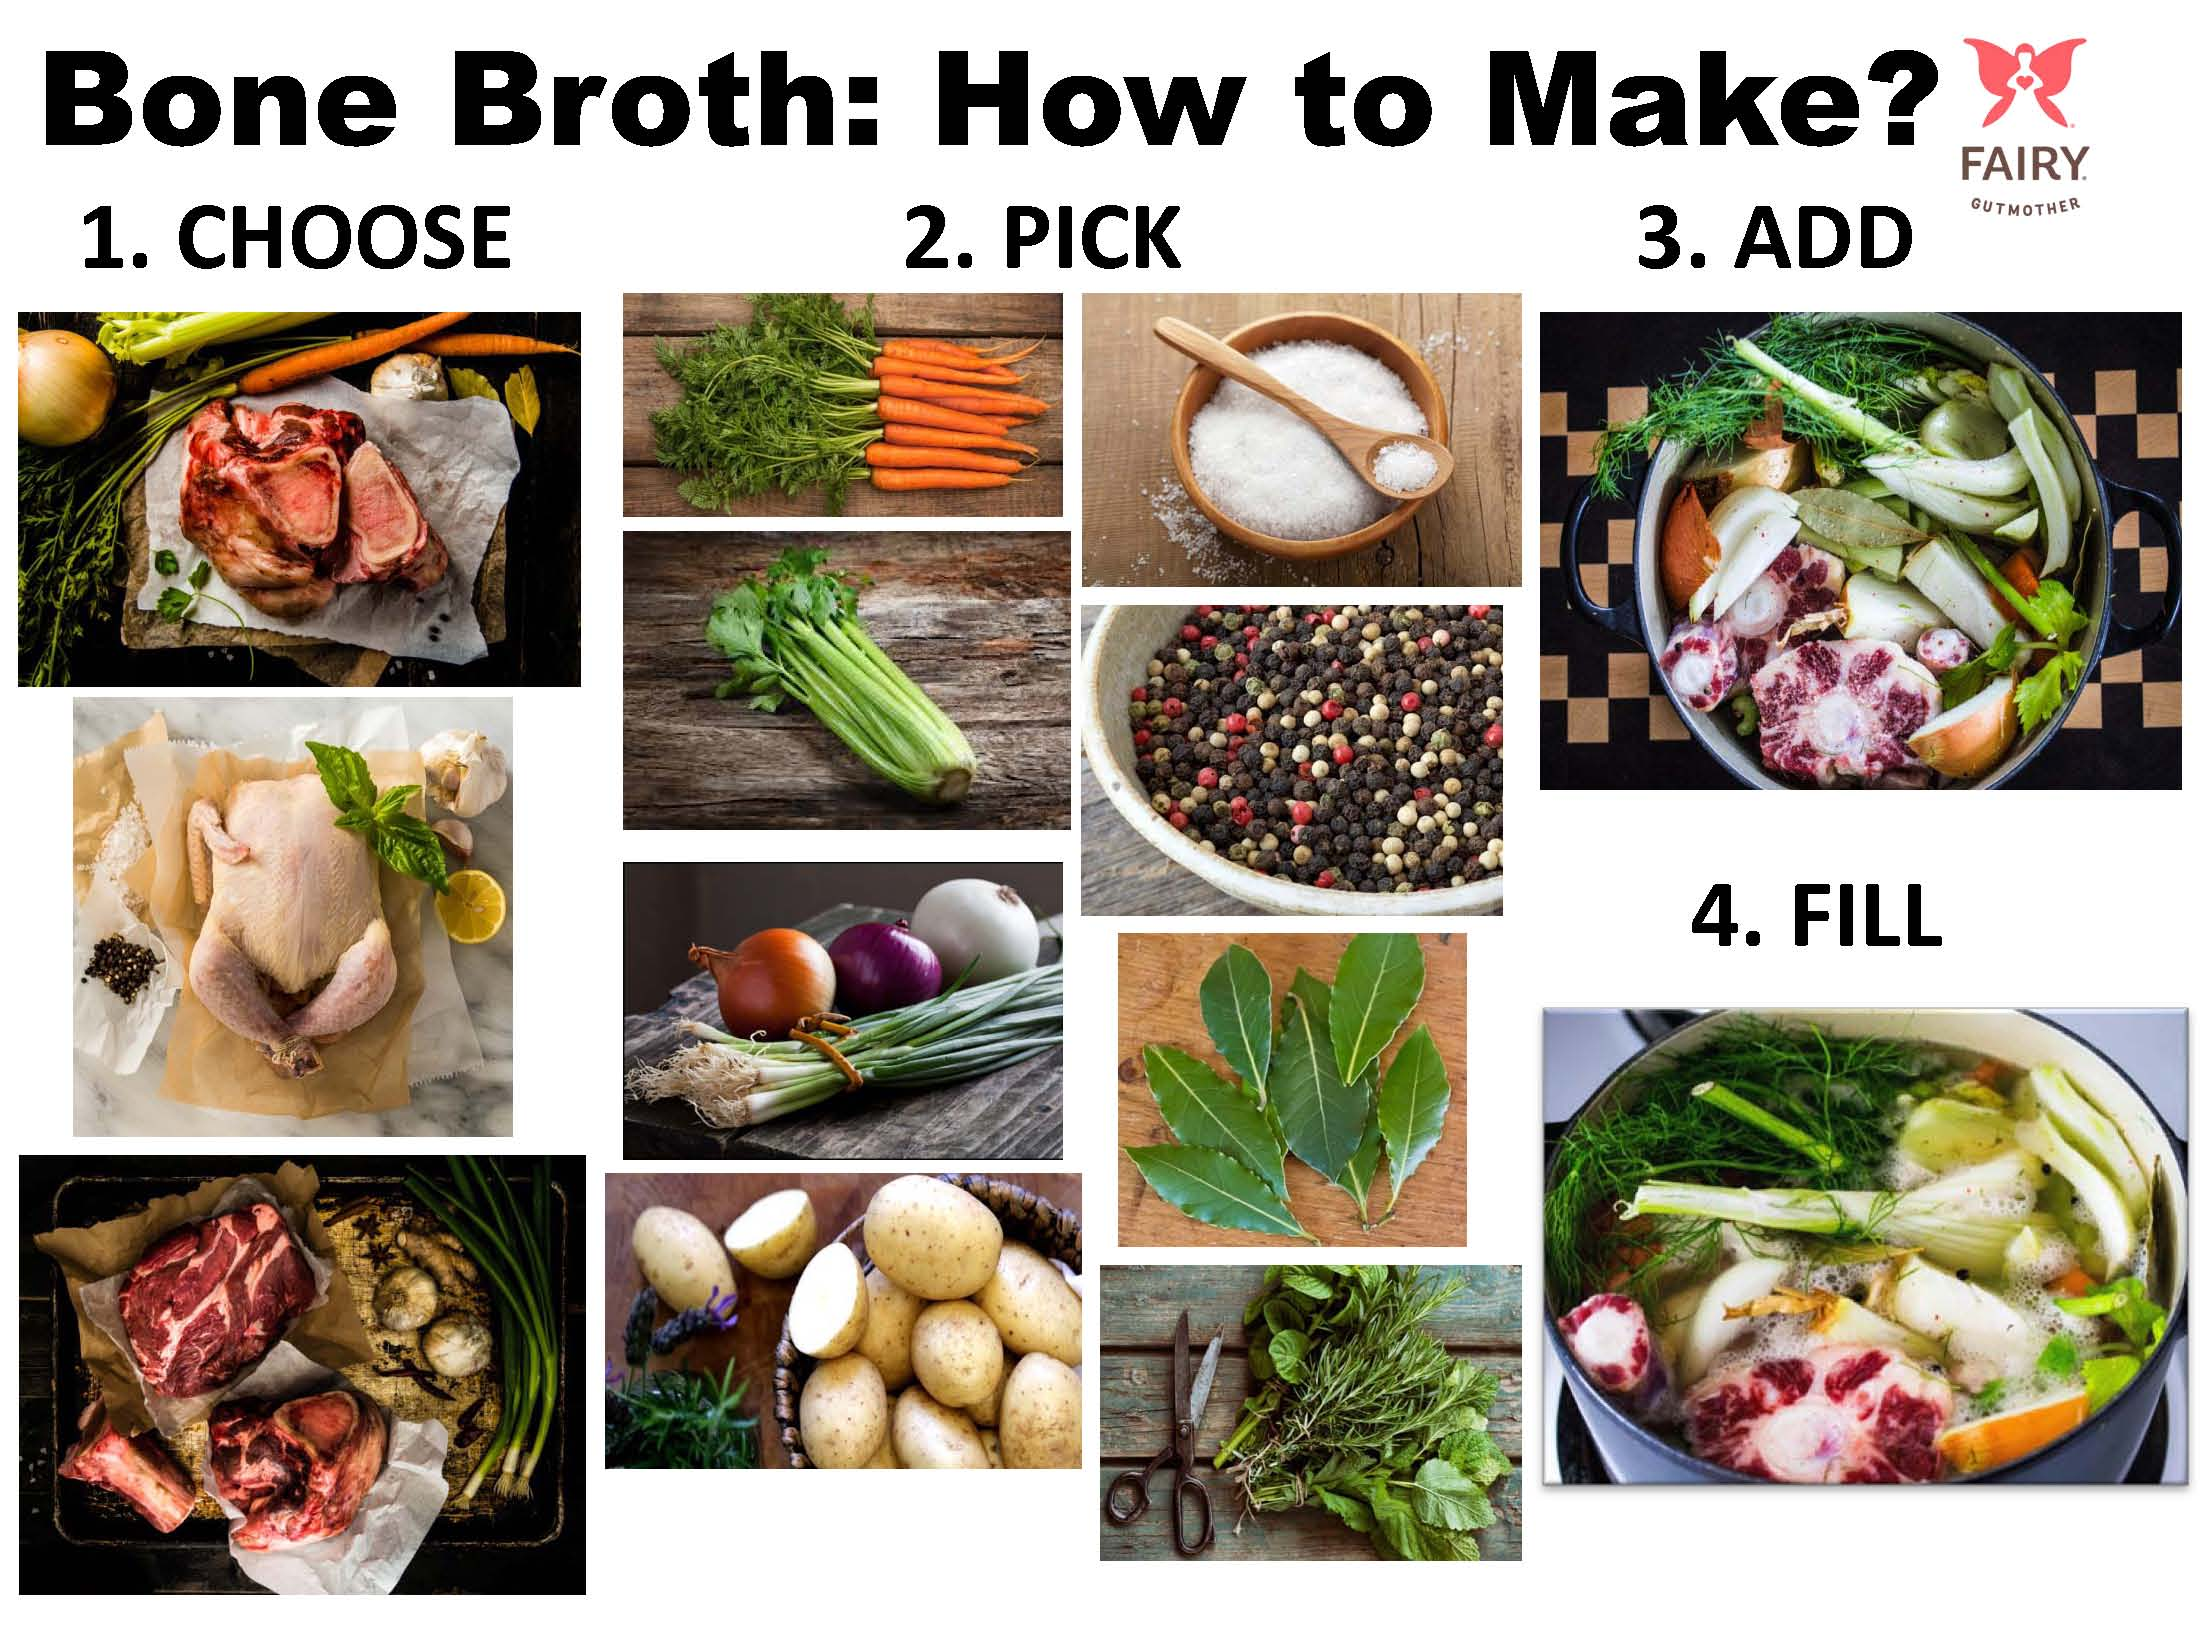 How to make bone broth in just 4 simple steps! 1. Pick your Bones 2. Choose your Fix-Ins 3. Add to pot 4. Fill with water and simmer